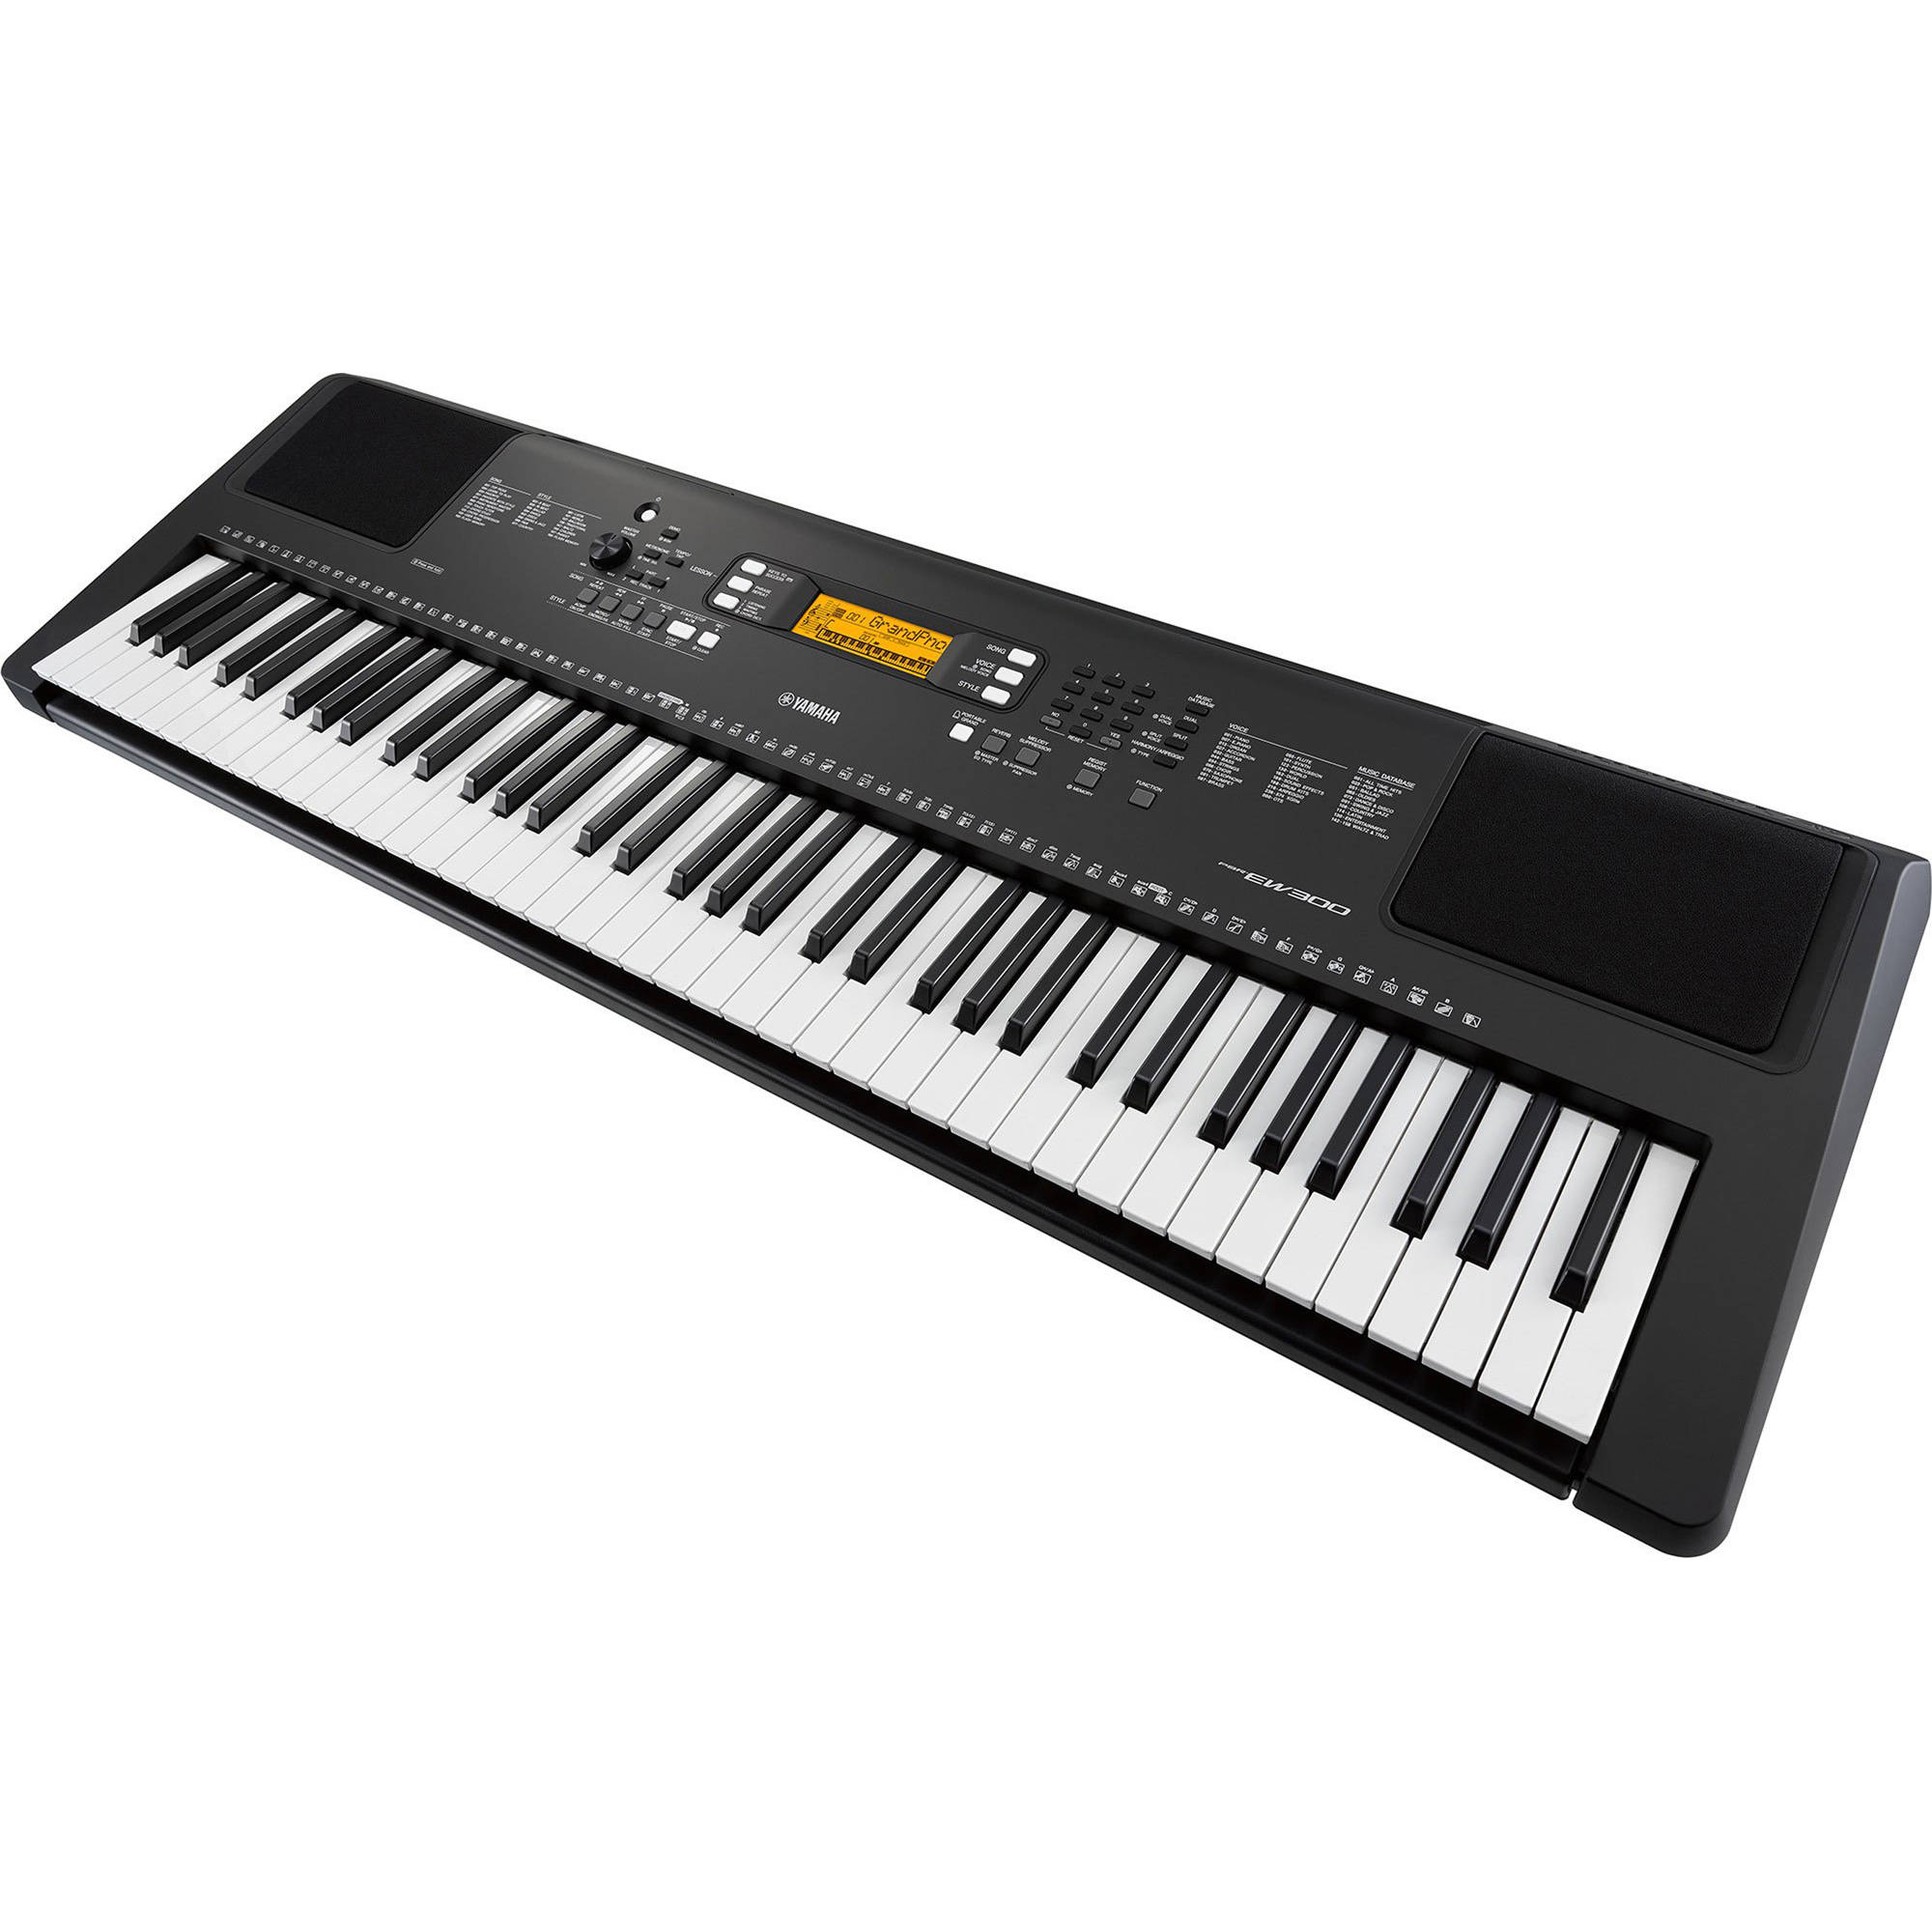 yamaha psr ew300 76 key portable keyboard psrew300 b h photo. Black Bedroom Furniture Sets. Home Design Ideas